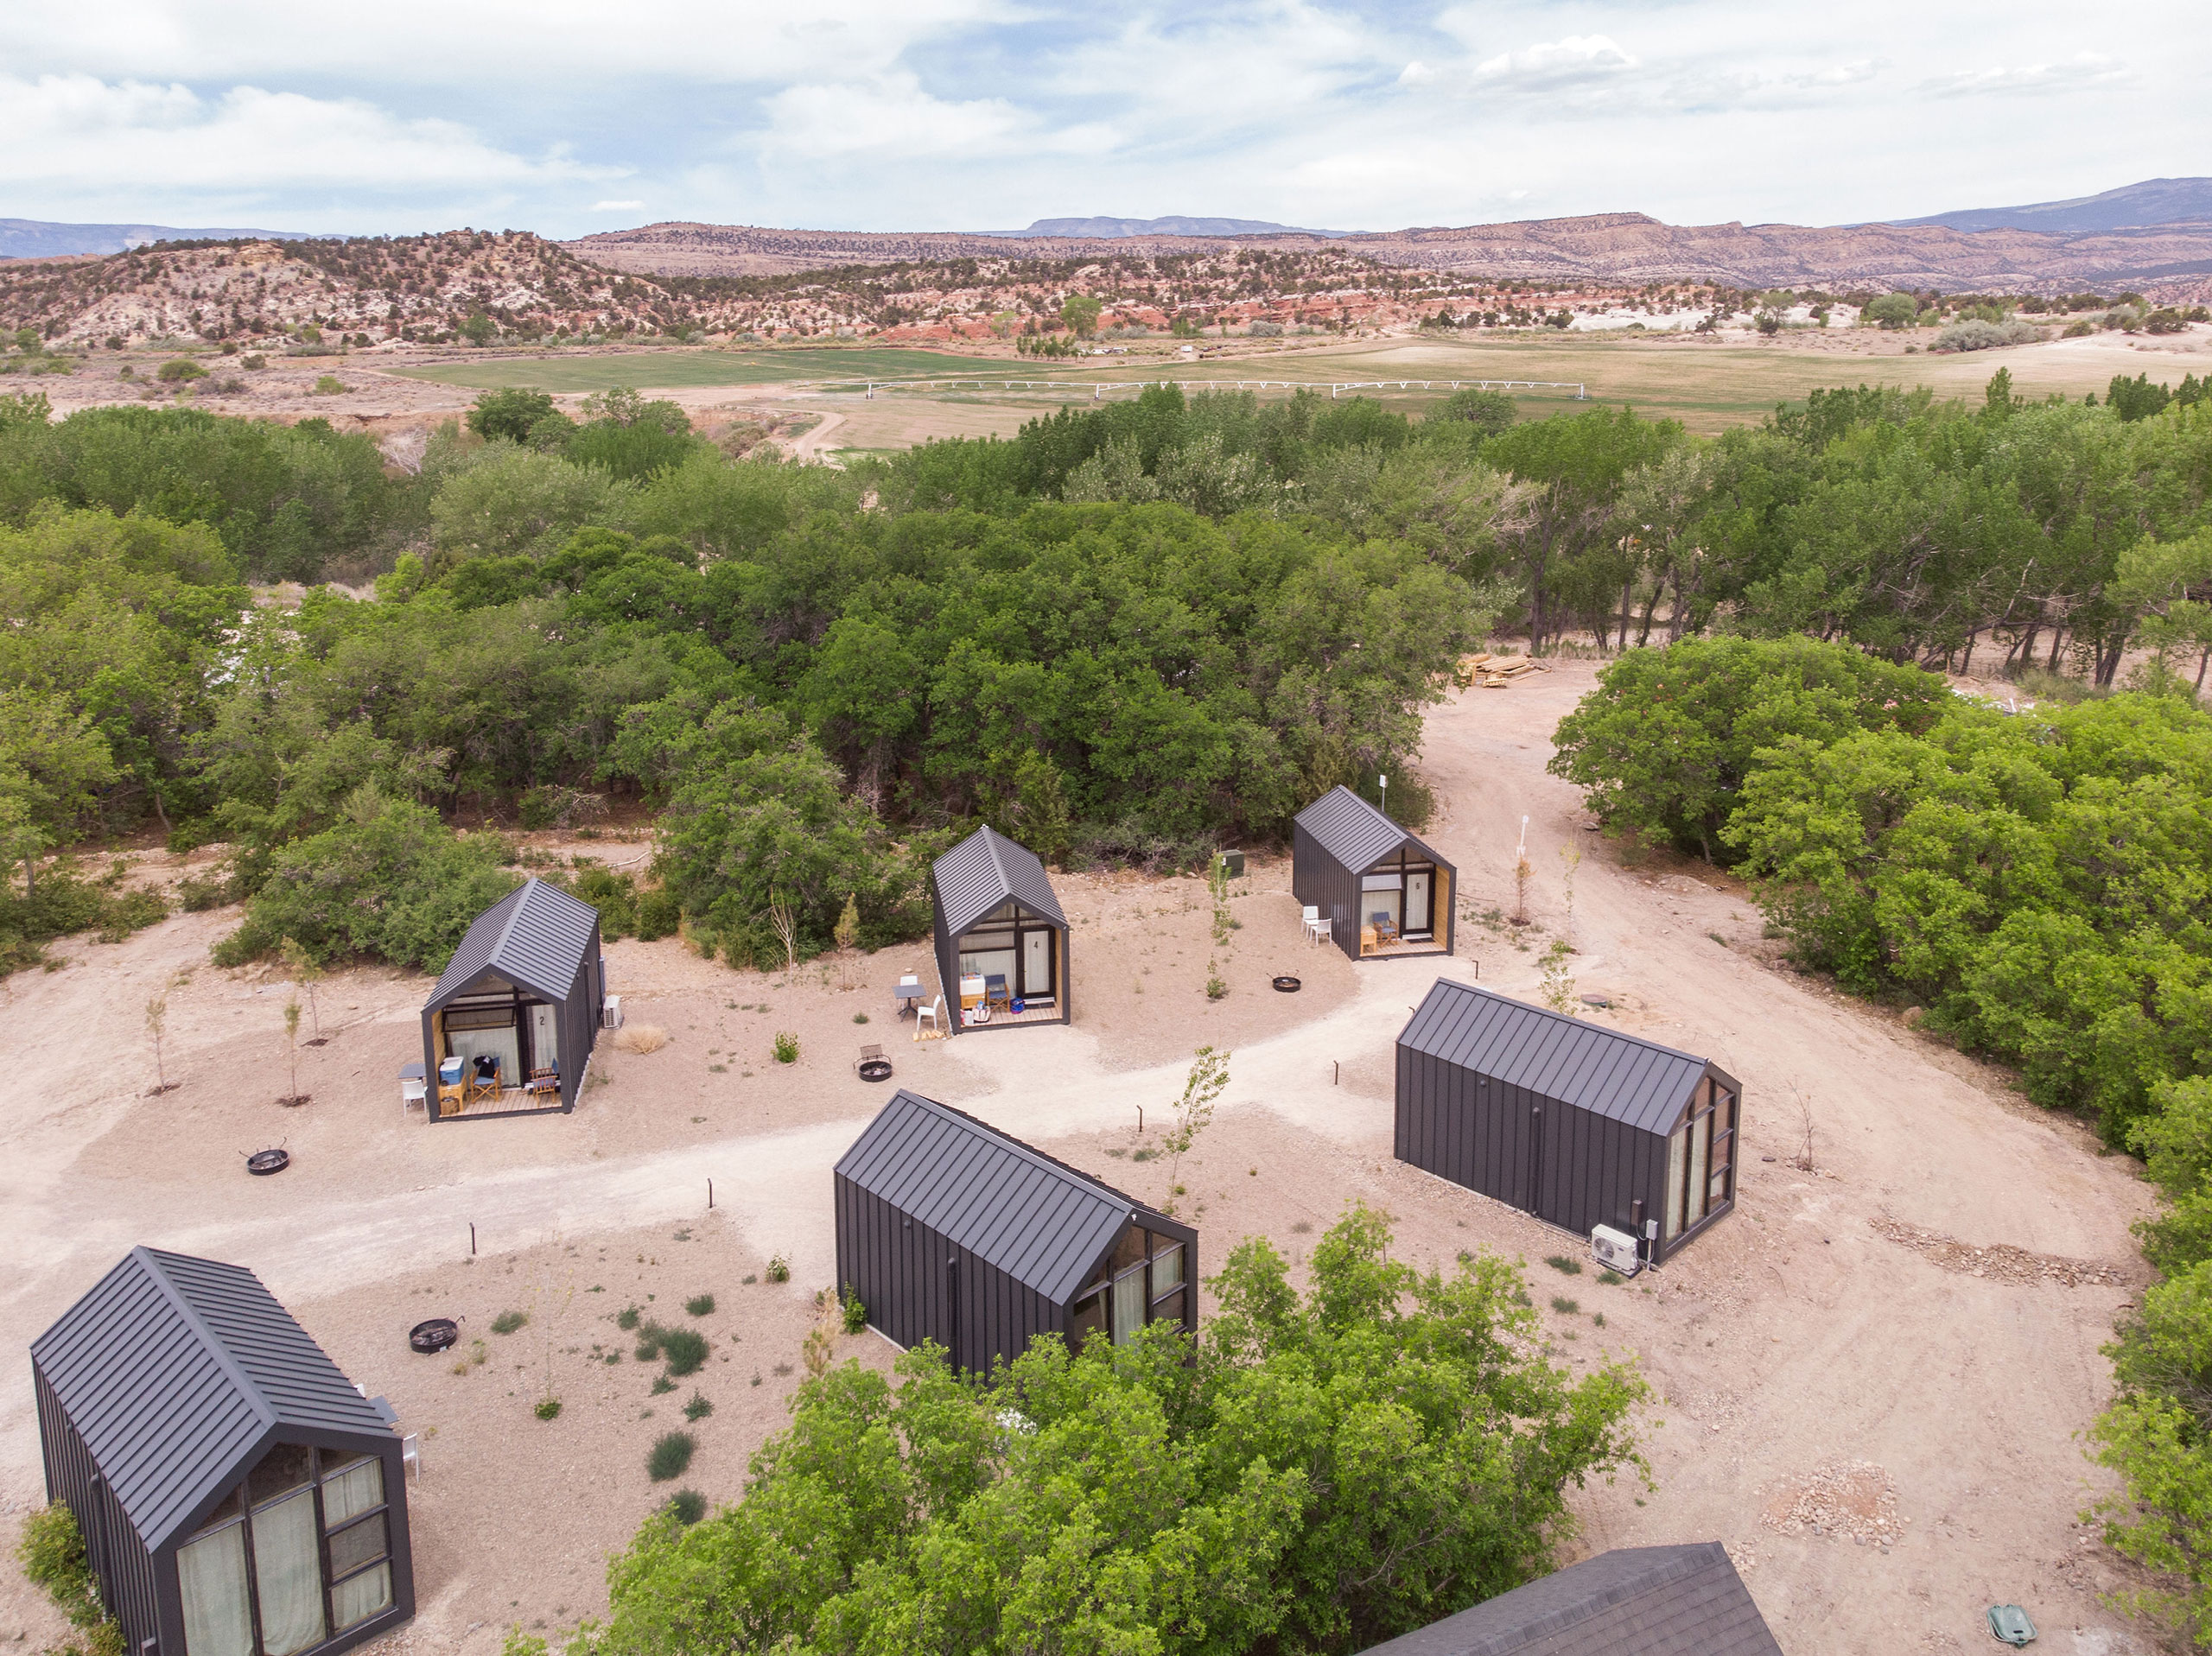 Cabins Overhead.Photography by Kim and Nash Finley.